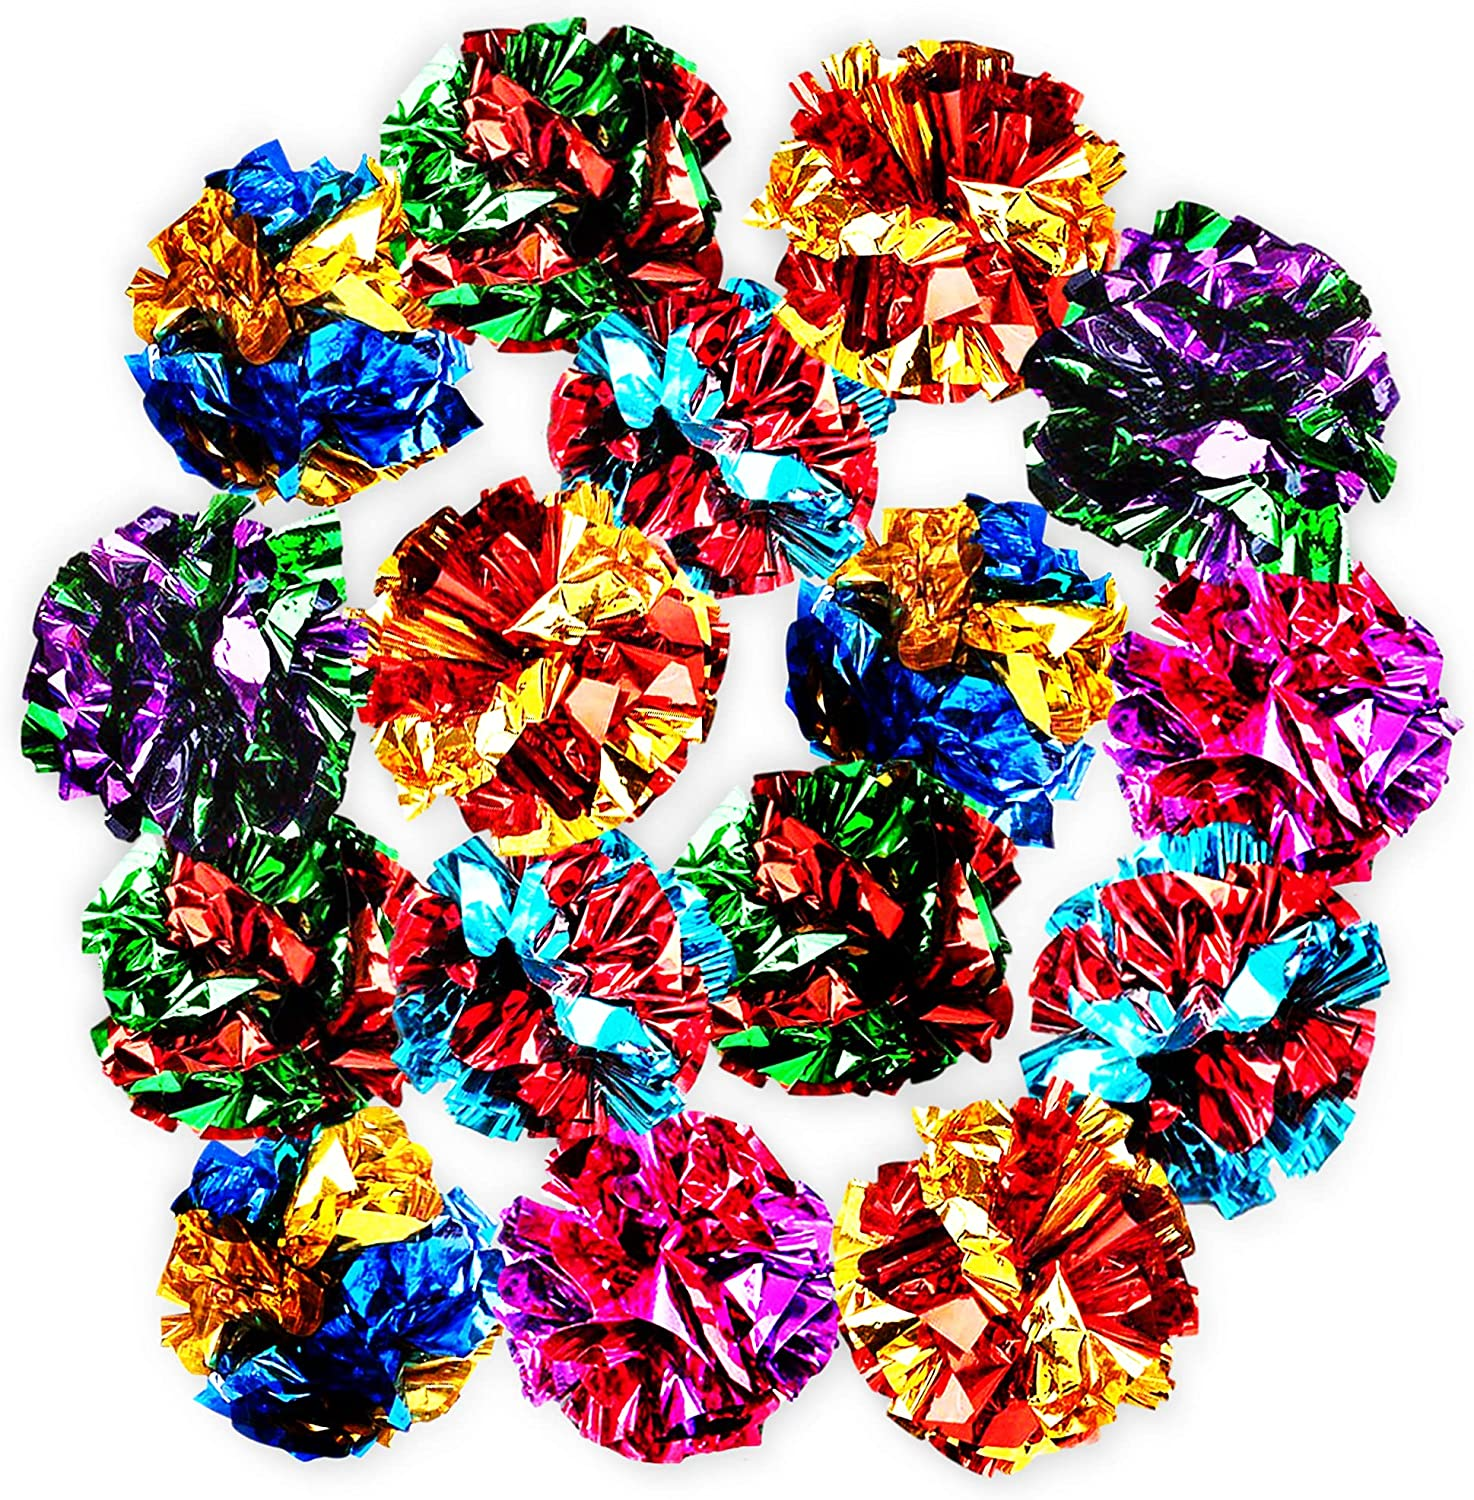 SunGrow Mylar Crinkle Balls Challenge the lowest Regular store price of Japan ☆ for Cats Stress and Shiny To Buster